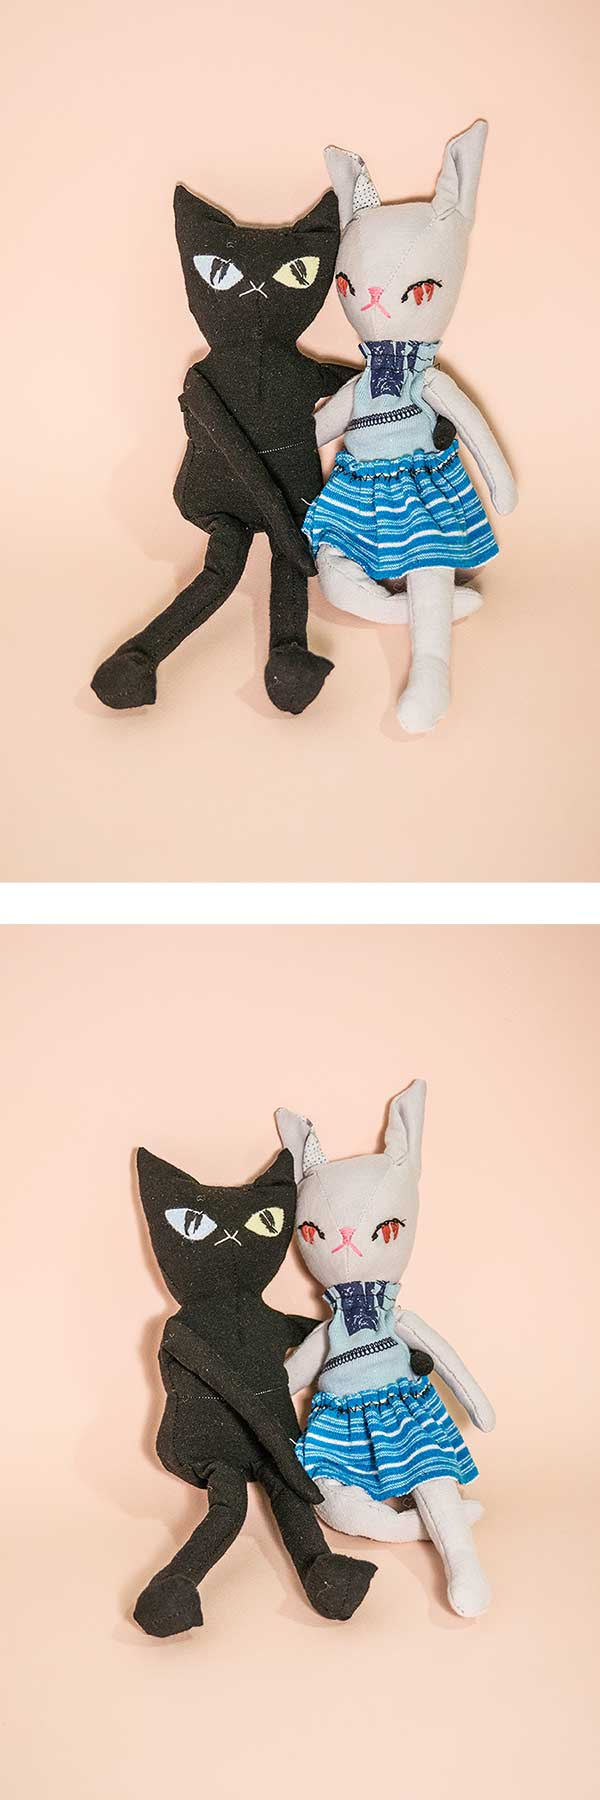 becca the grey rabbit and ken the black cat | handmade cloth dolls